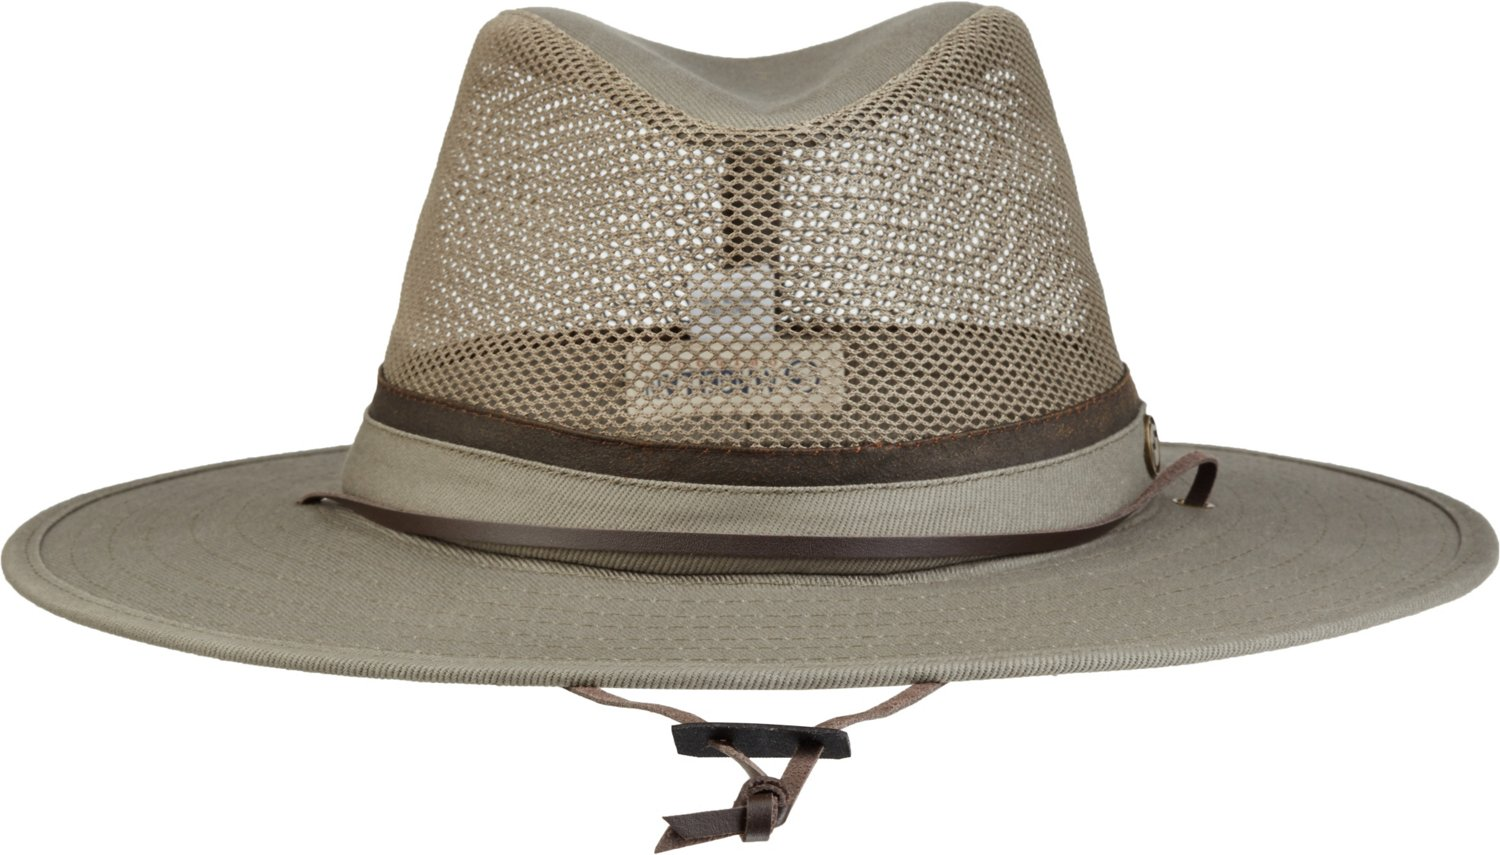 37581a95988 Display product reviews for Magellan Outdoors Men s Big Brim Twill Safari  Hat